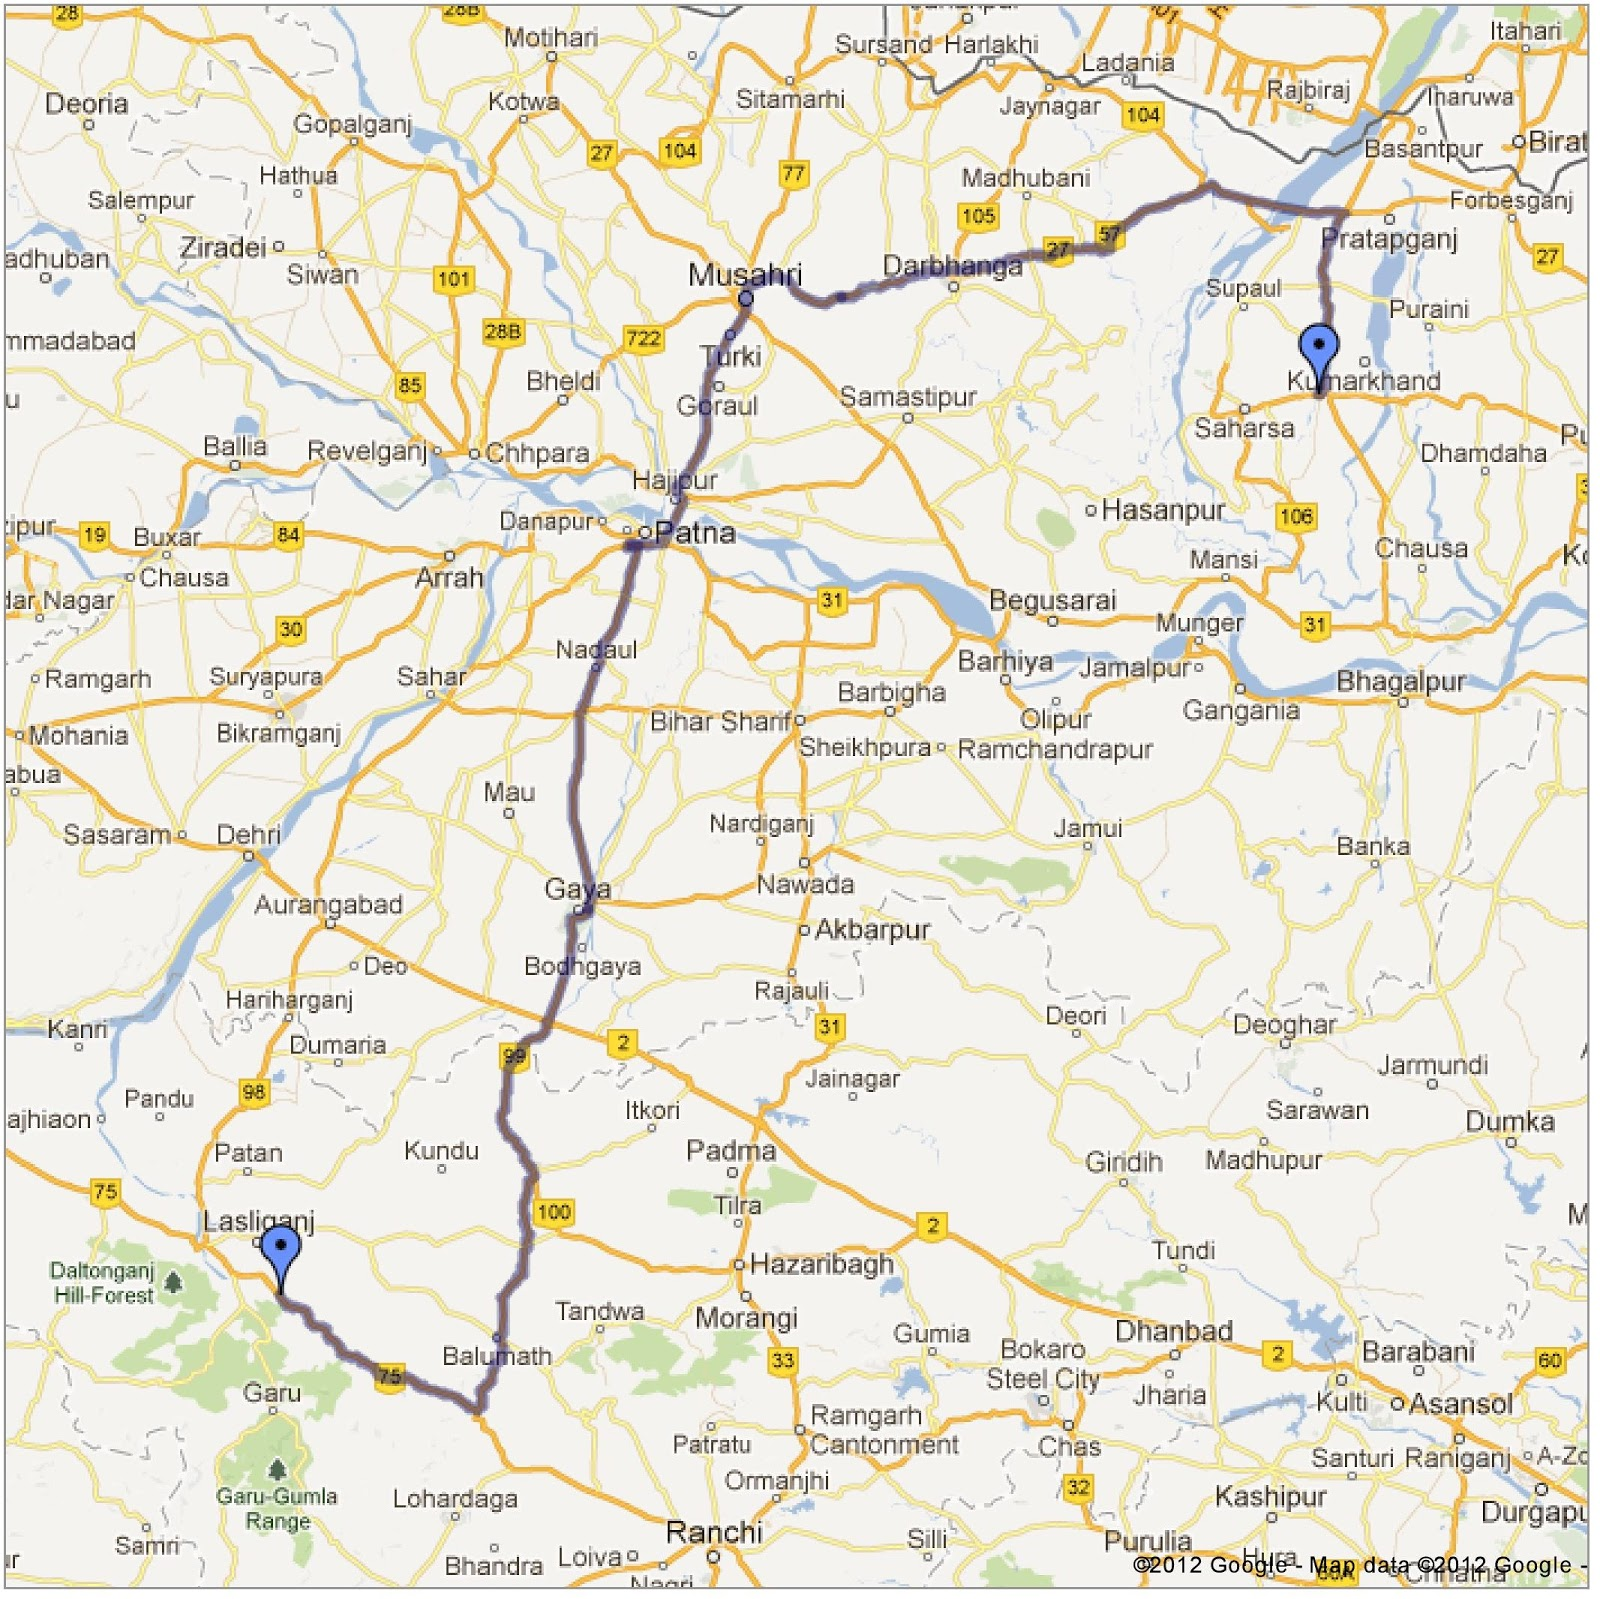 Driving Map Of United States Allotherplacesorg Map Of The Us - What is the us google map version=